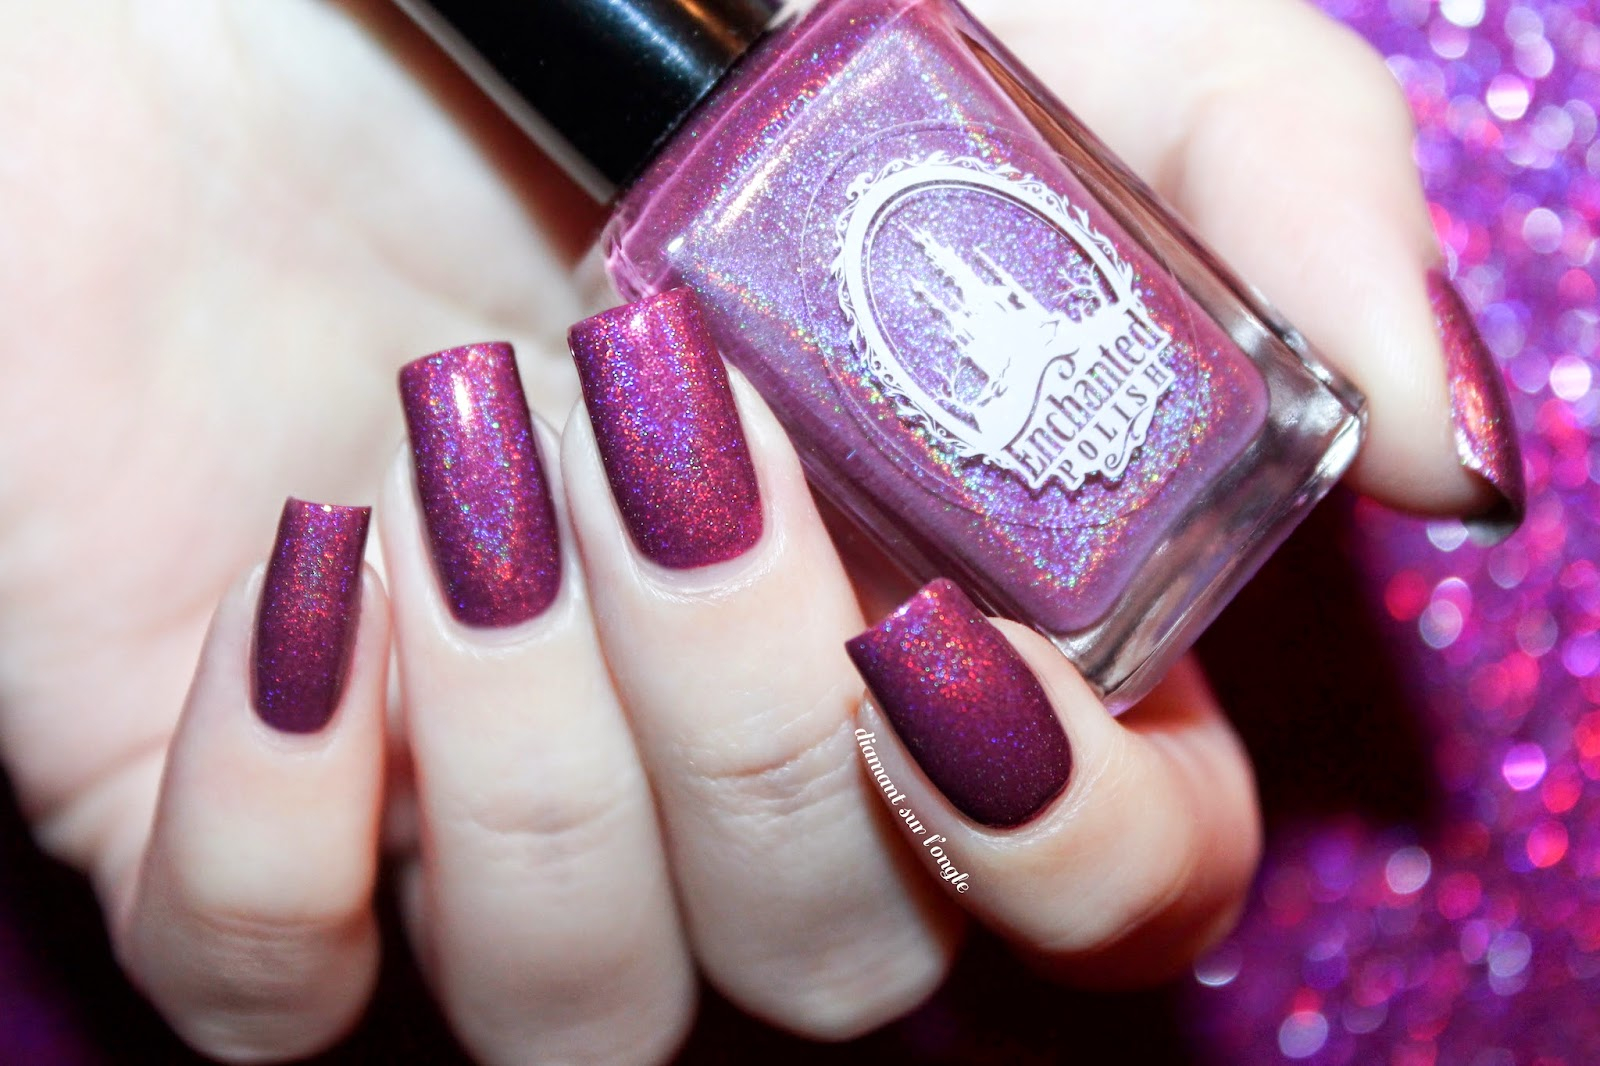 Swatch of February 2014 by Enchanted Polish